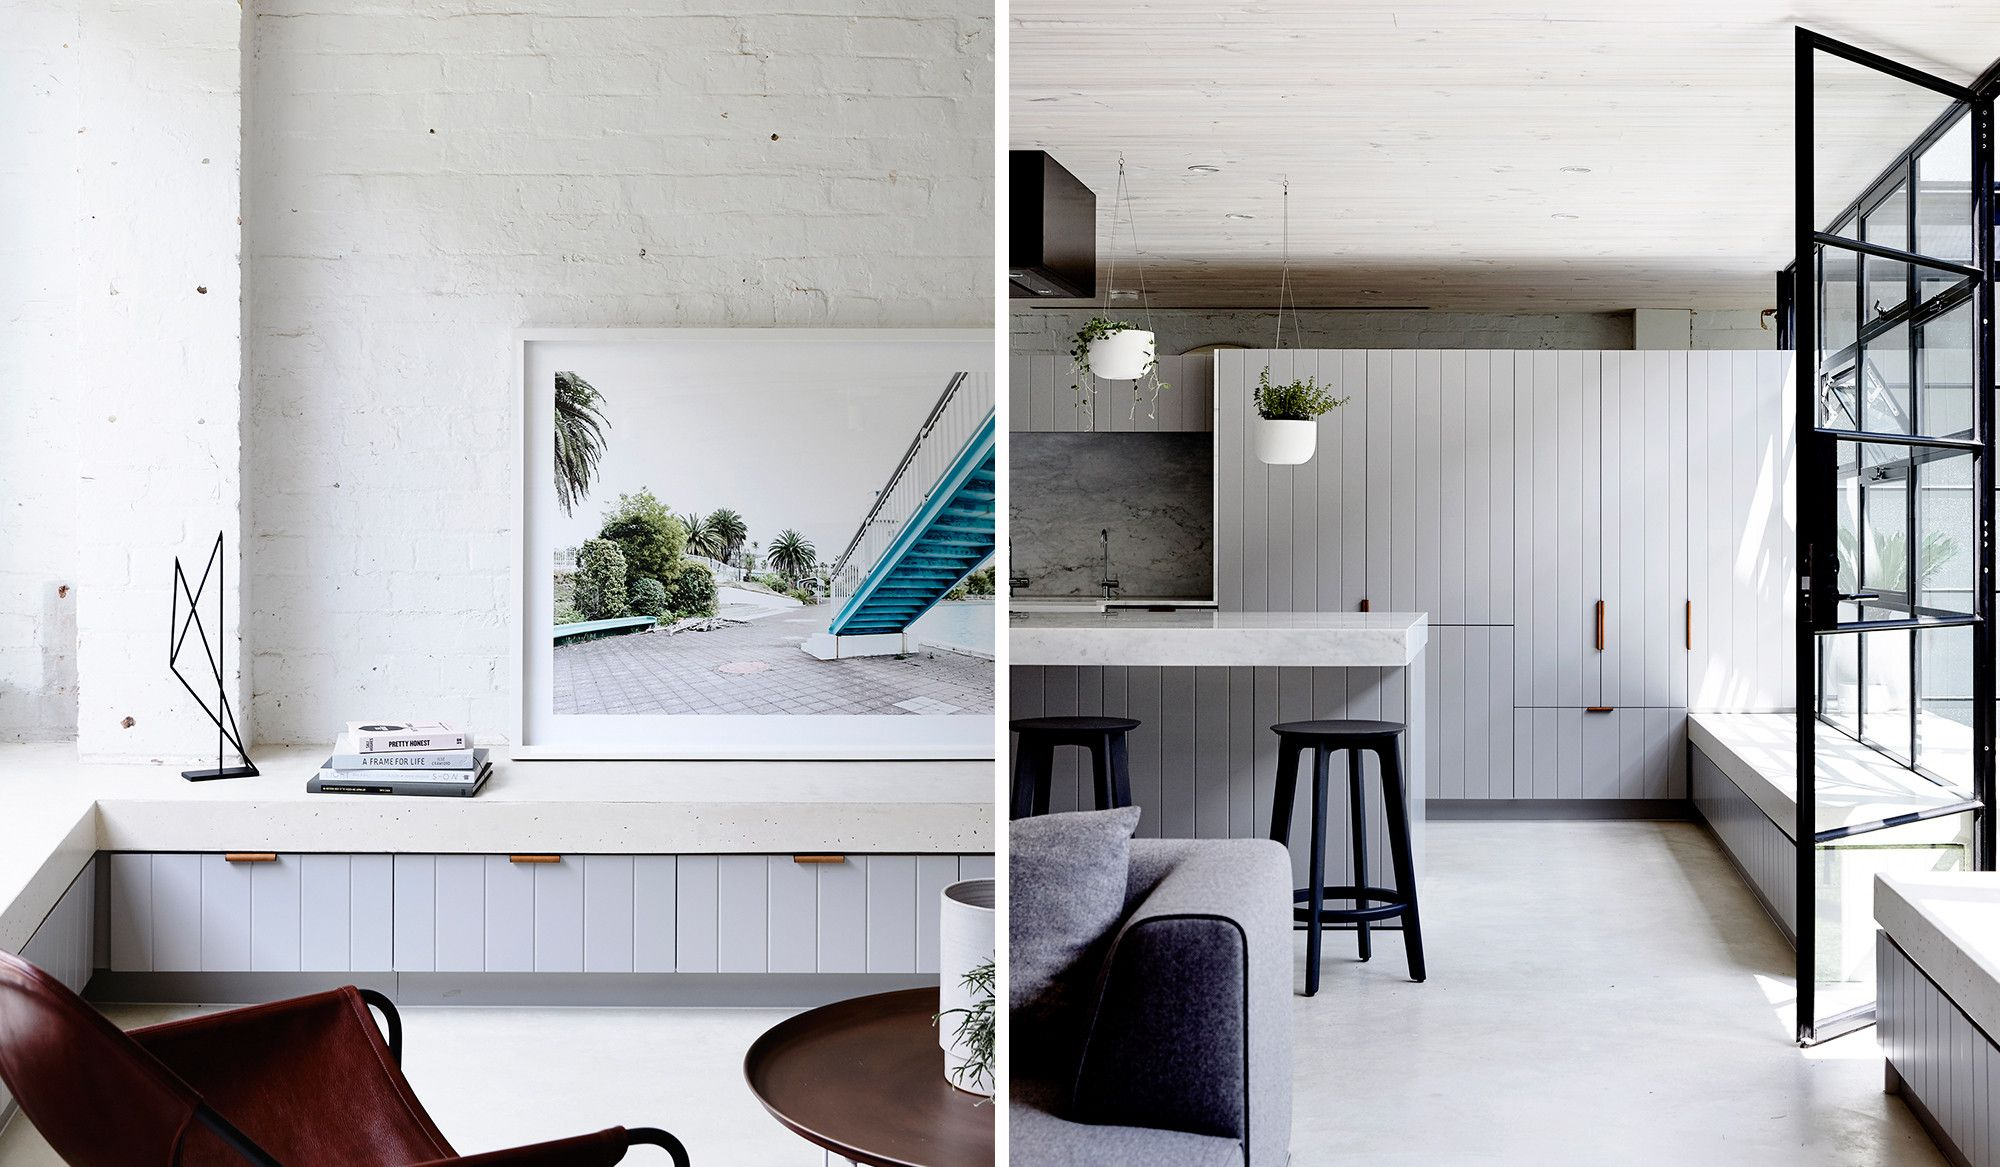 KITCHEN / LIVING: Kitchen / Living Storage Incorporating Entertainment  Unit. Joinery Detail Inspiration.